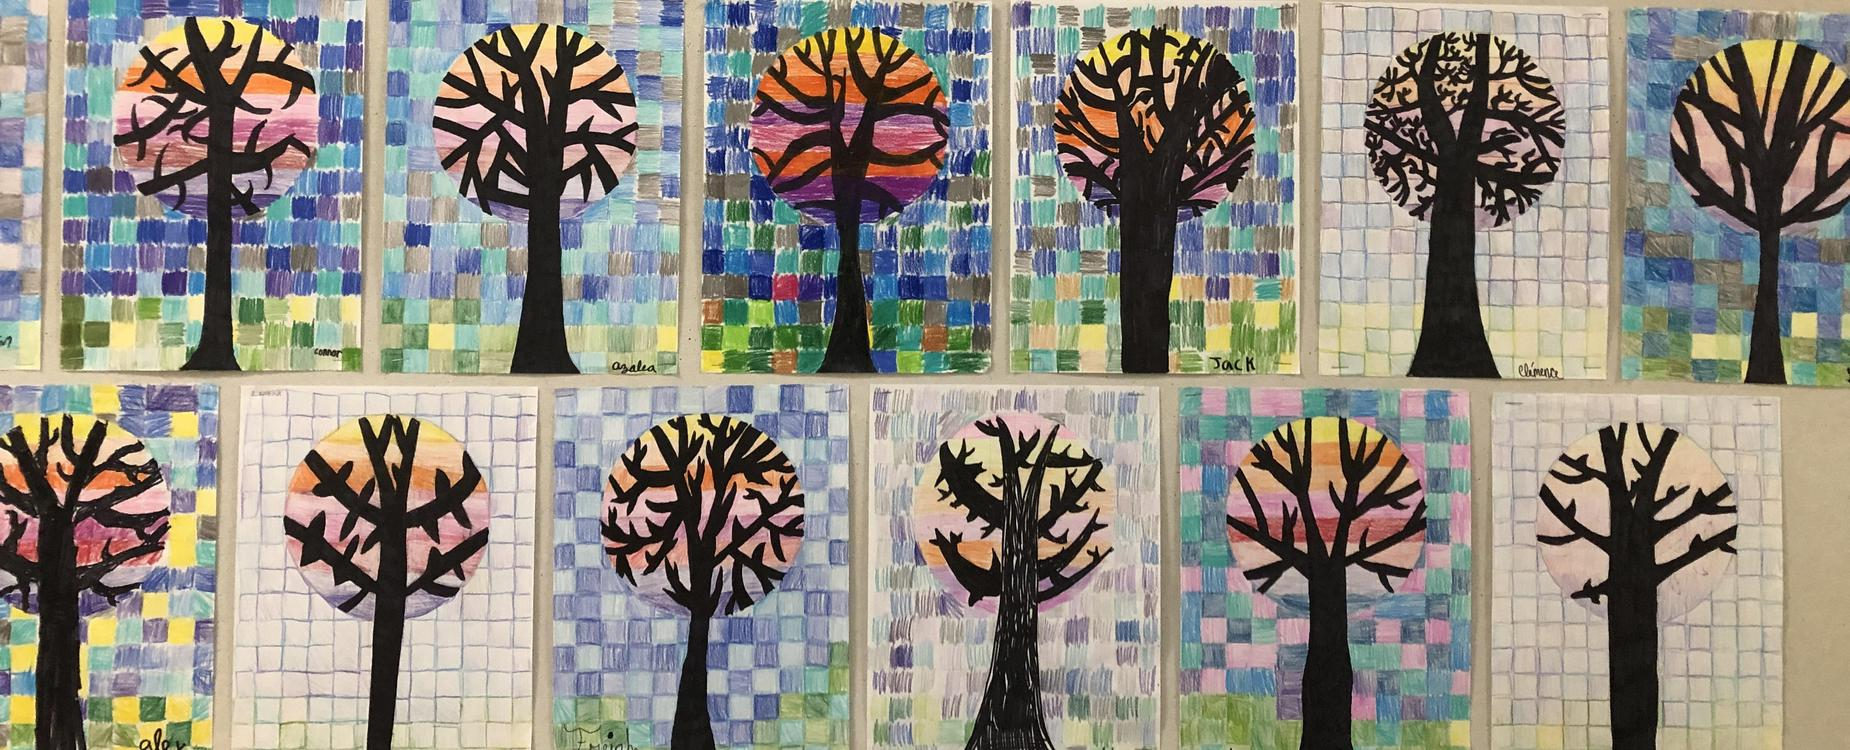 Student artwork of trees.  The tree trunk and branches are black, with a circle of colors around the top of the tree.  The background is small squares of various colors, similar to pixels.